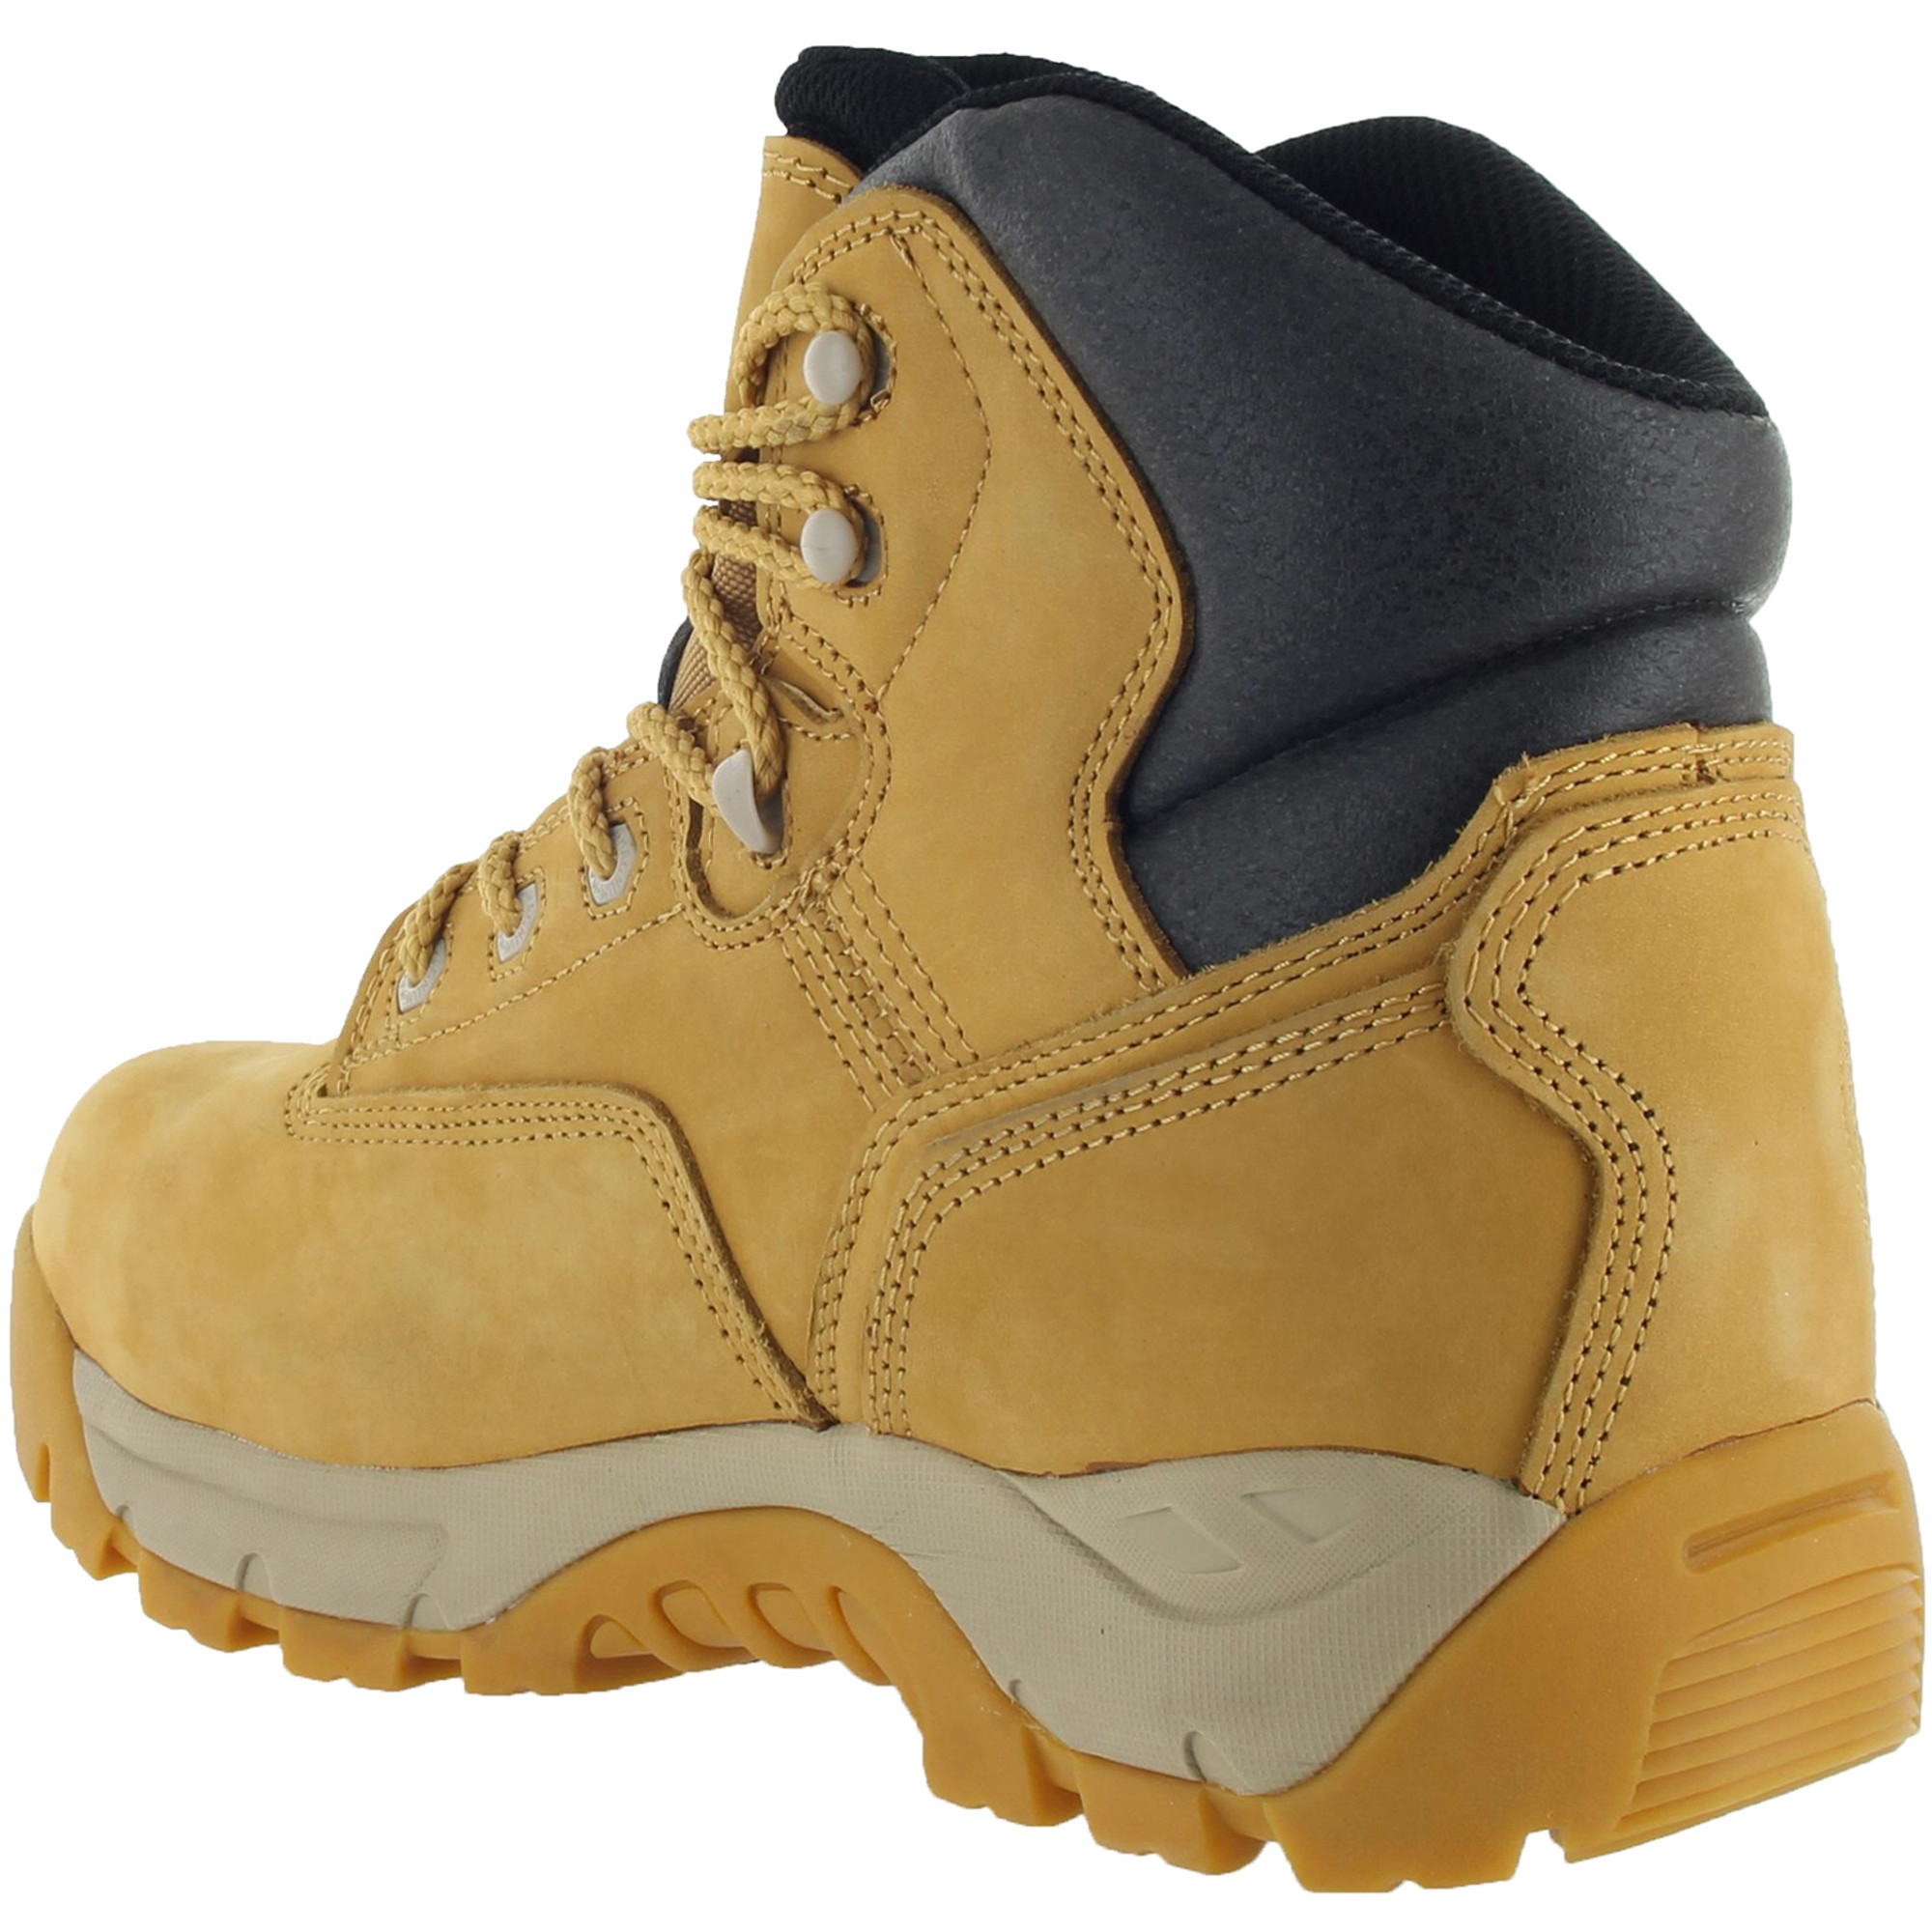 80aee4f174a Magnum Mens Precision Ultra Lite II Waterproof Composite Toe Boots 5540 -  Wheat